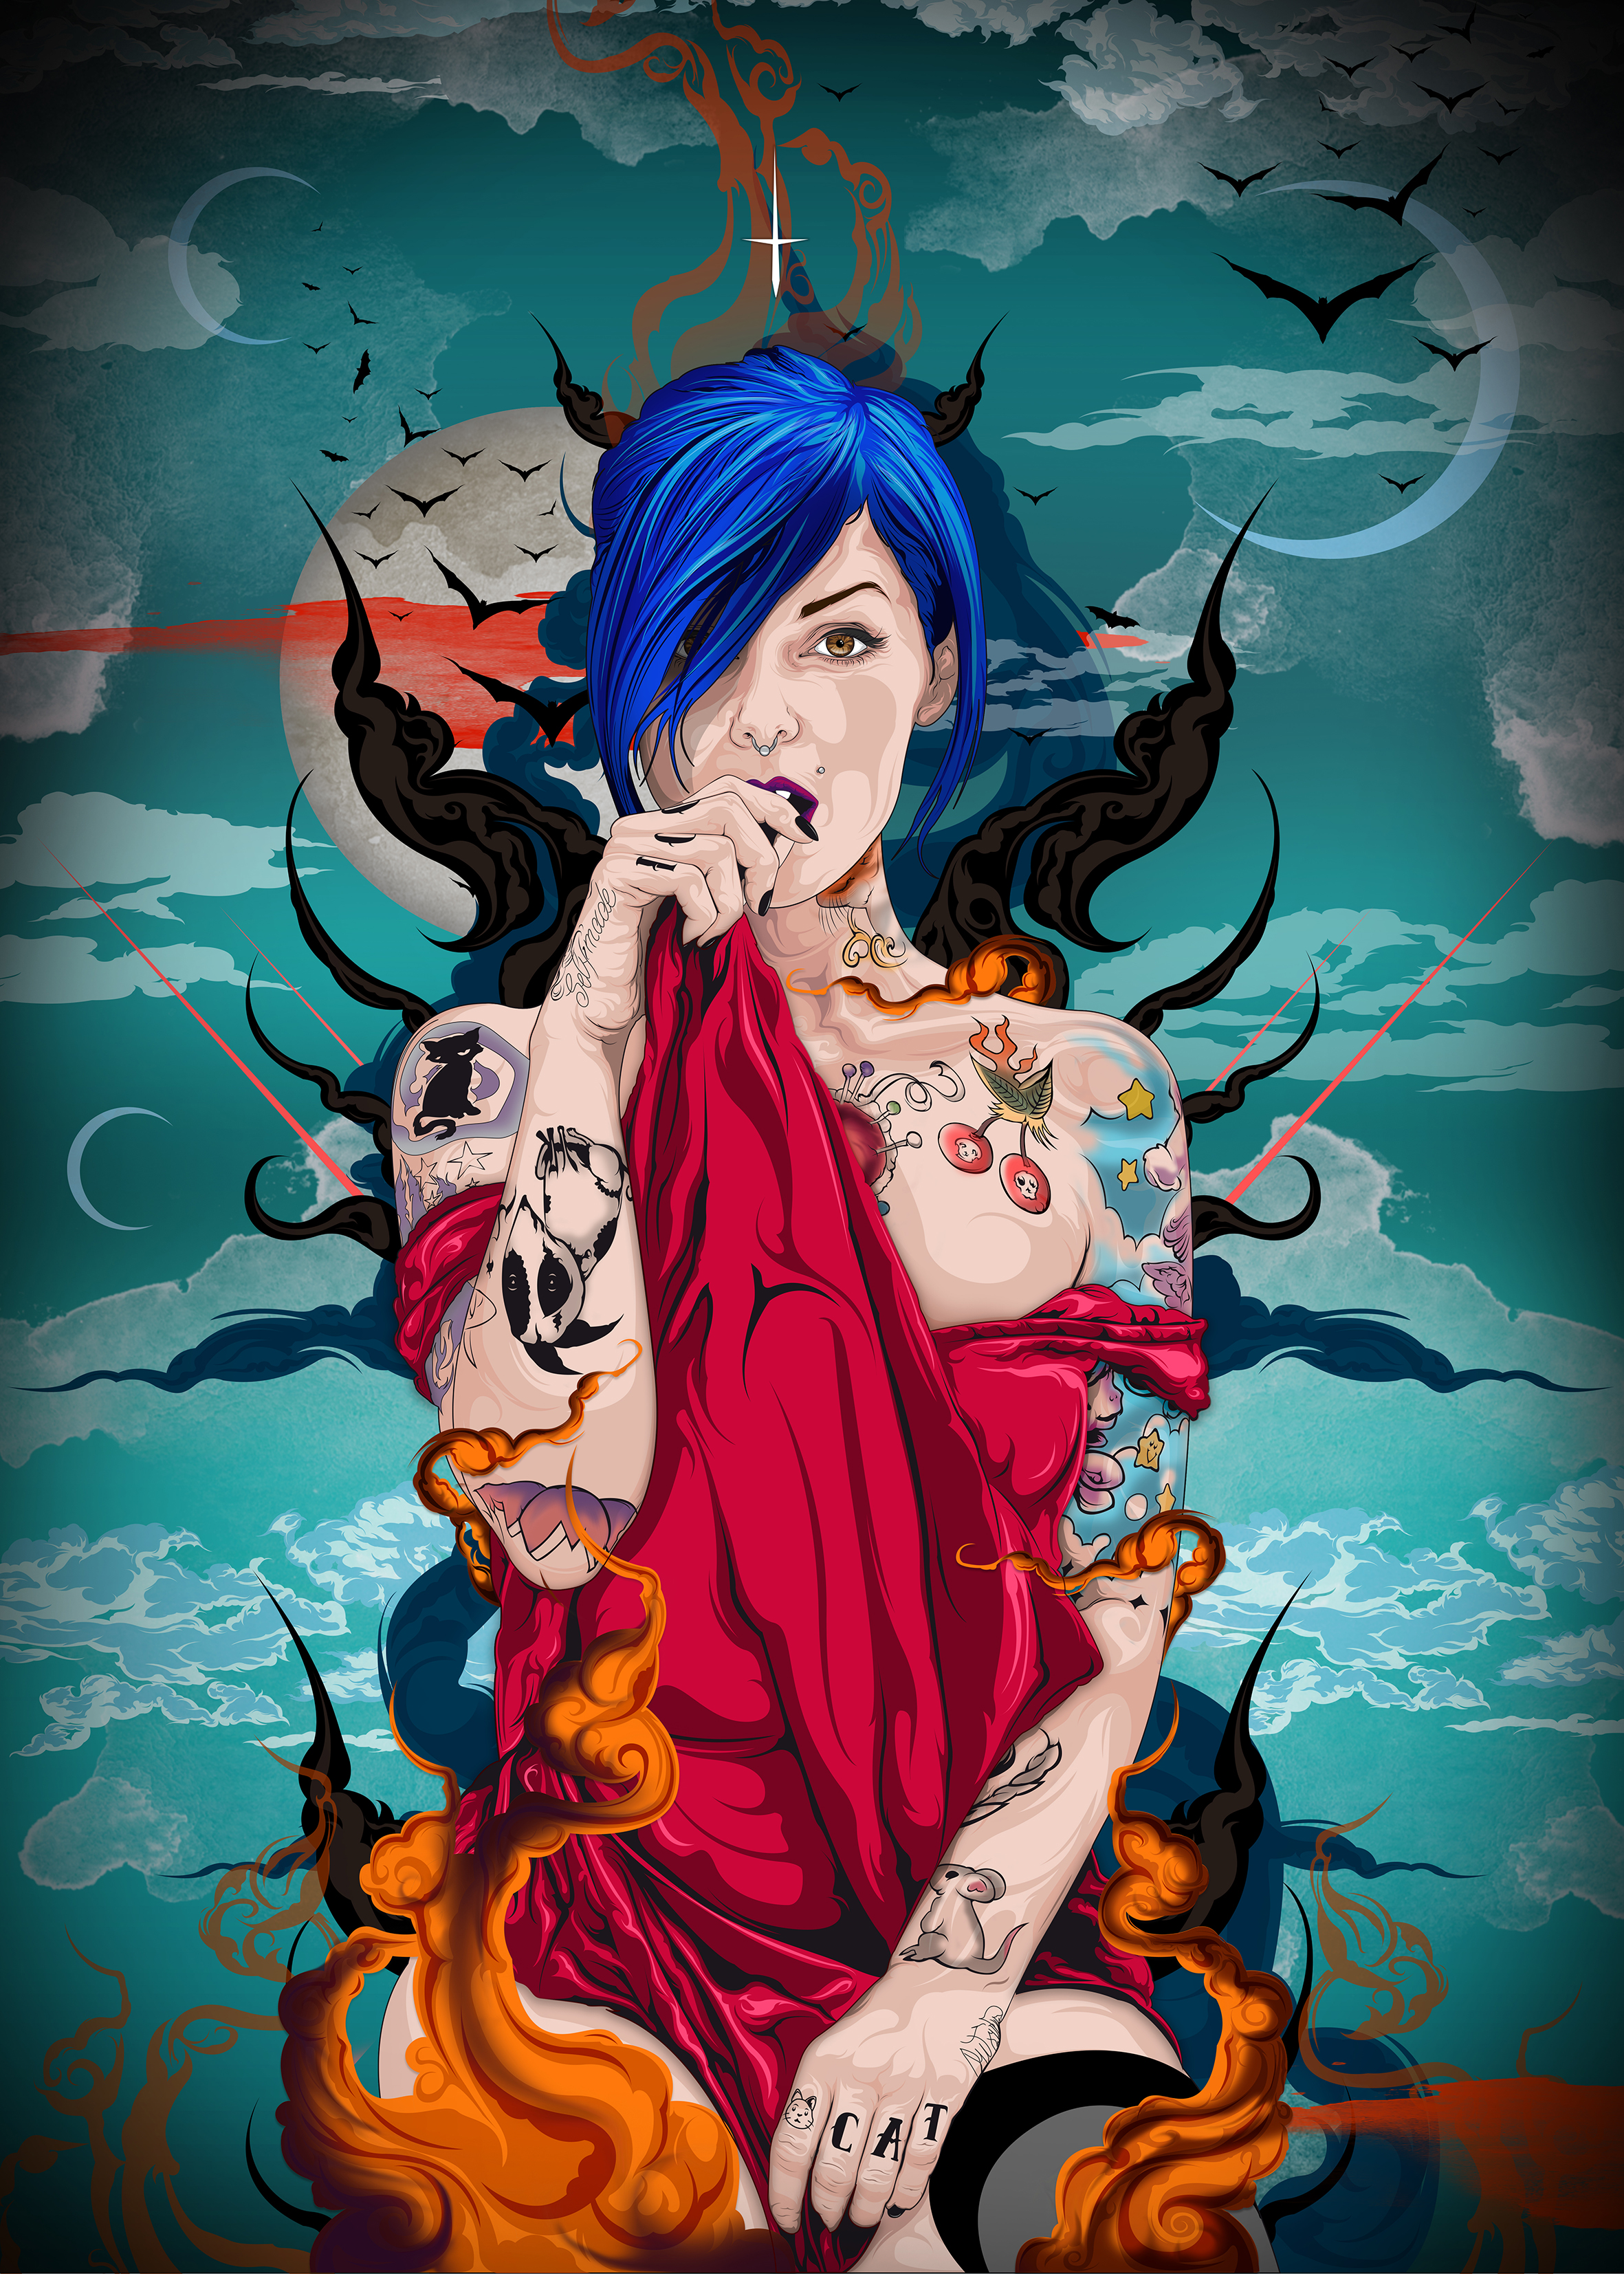 RIAE SUICIDE GIRL - REAL ACID